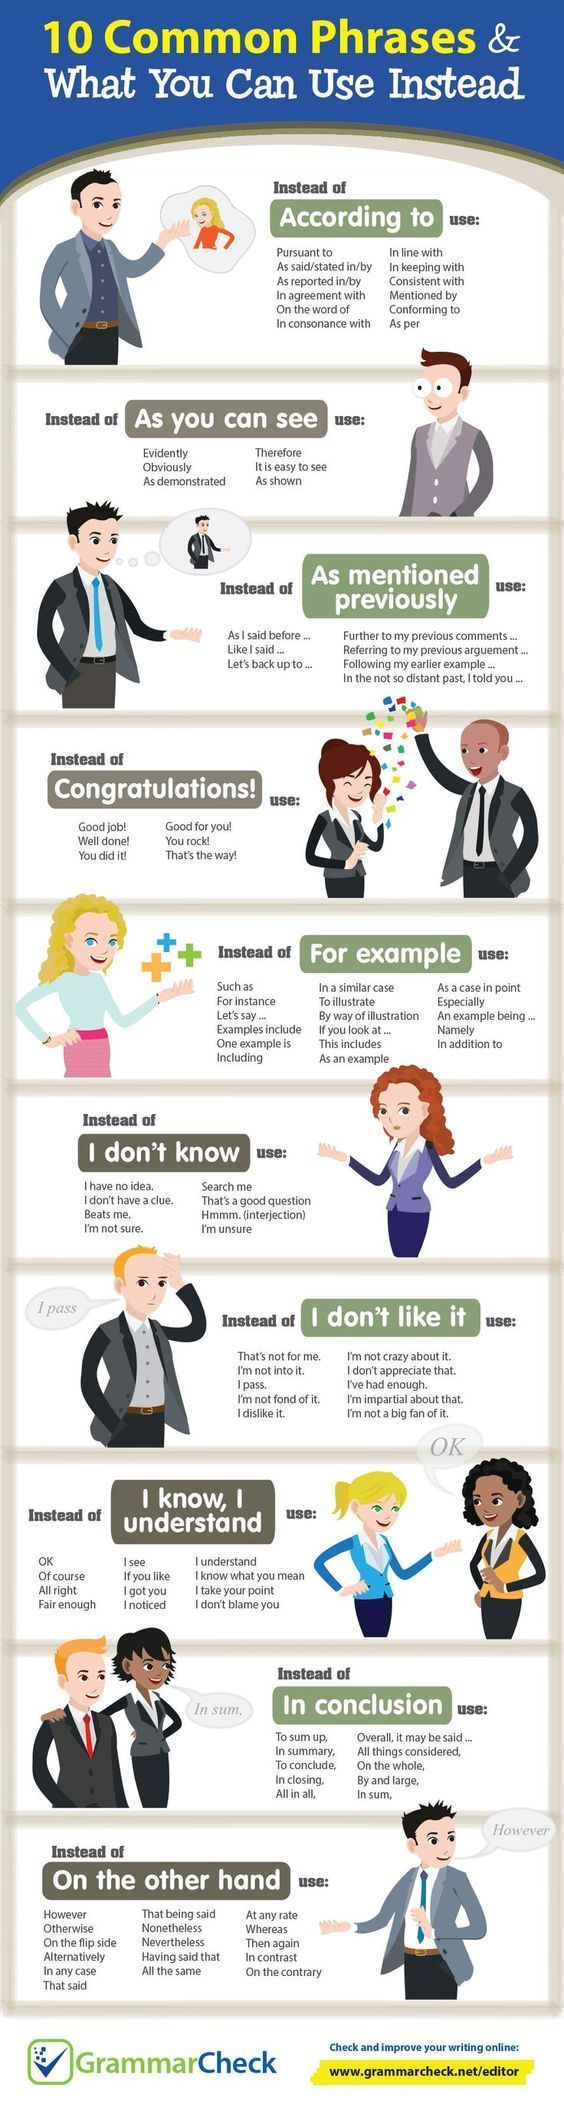 10 Common Phrases & What You Can Use Instead (Infographic) - #common #Infographic #language #Phrases #beautifularchitecture